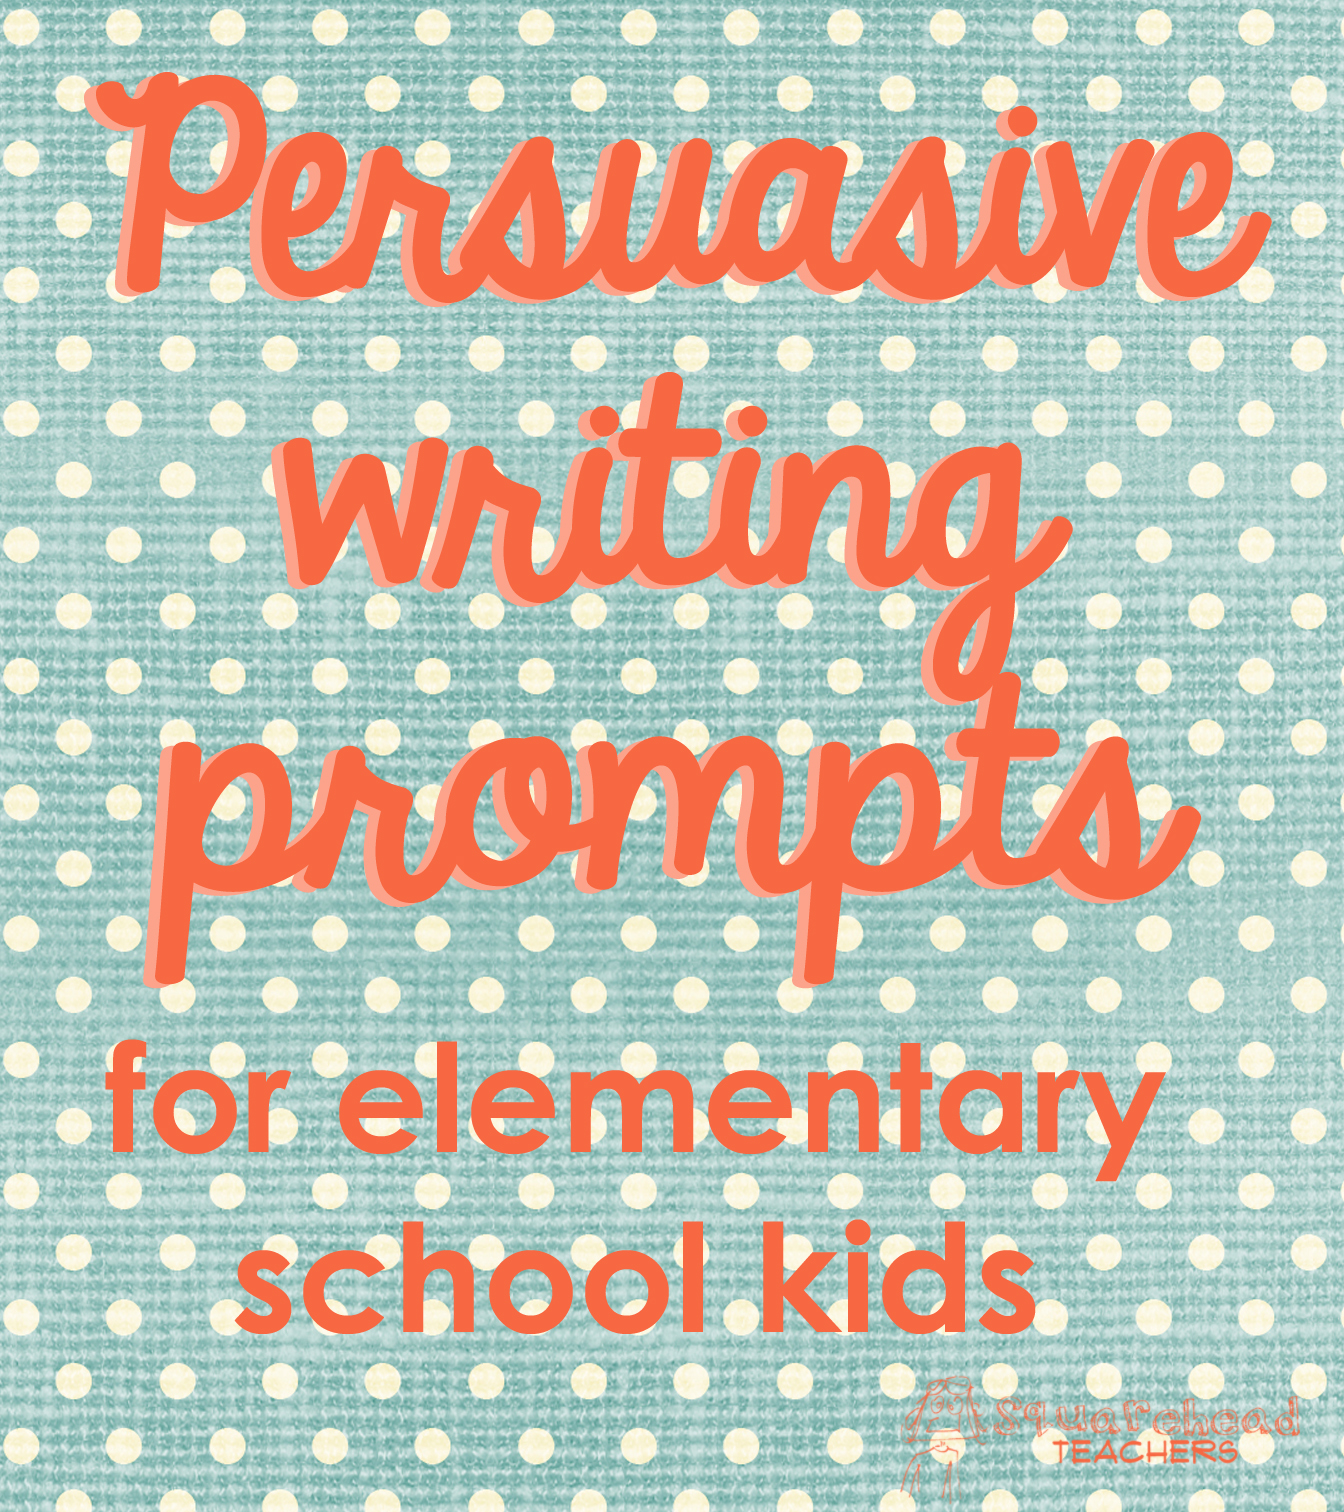 016 Persuasive Writing Prompts For Elementary School Kids Research Paper Topics Incredible Middle High Essay Activities